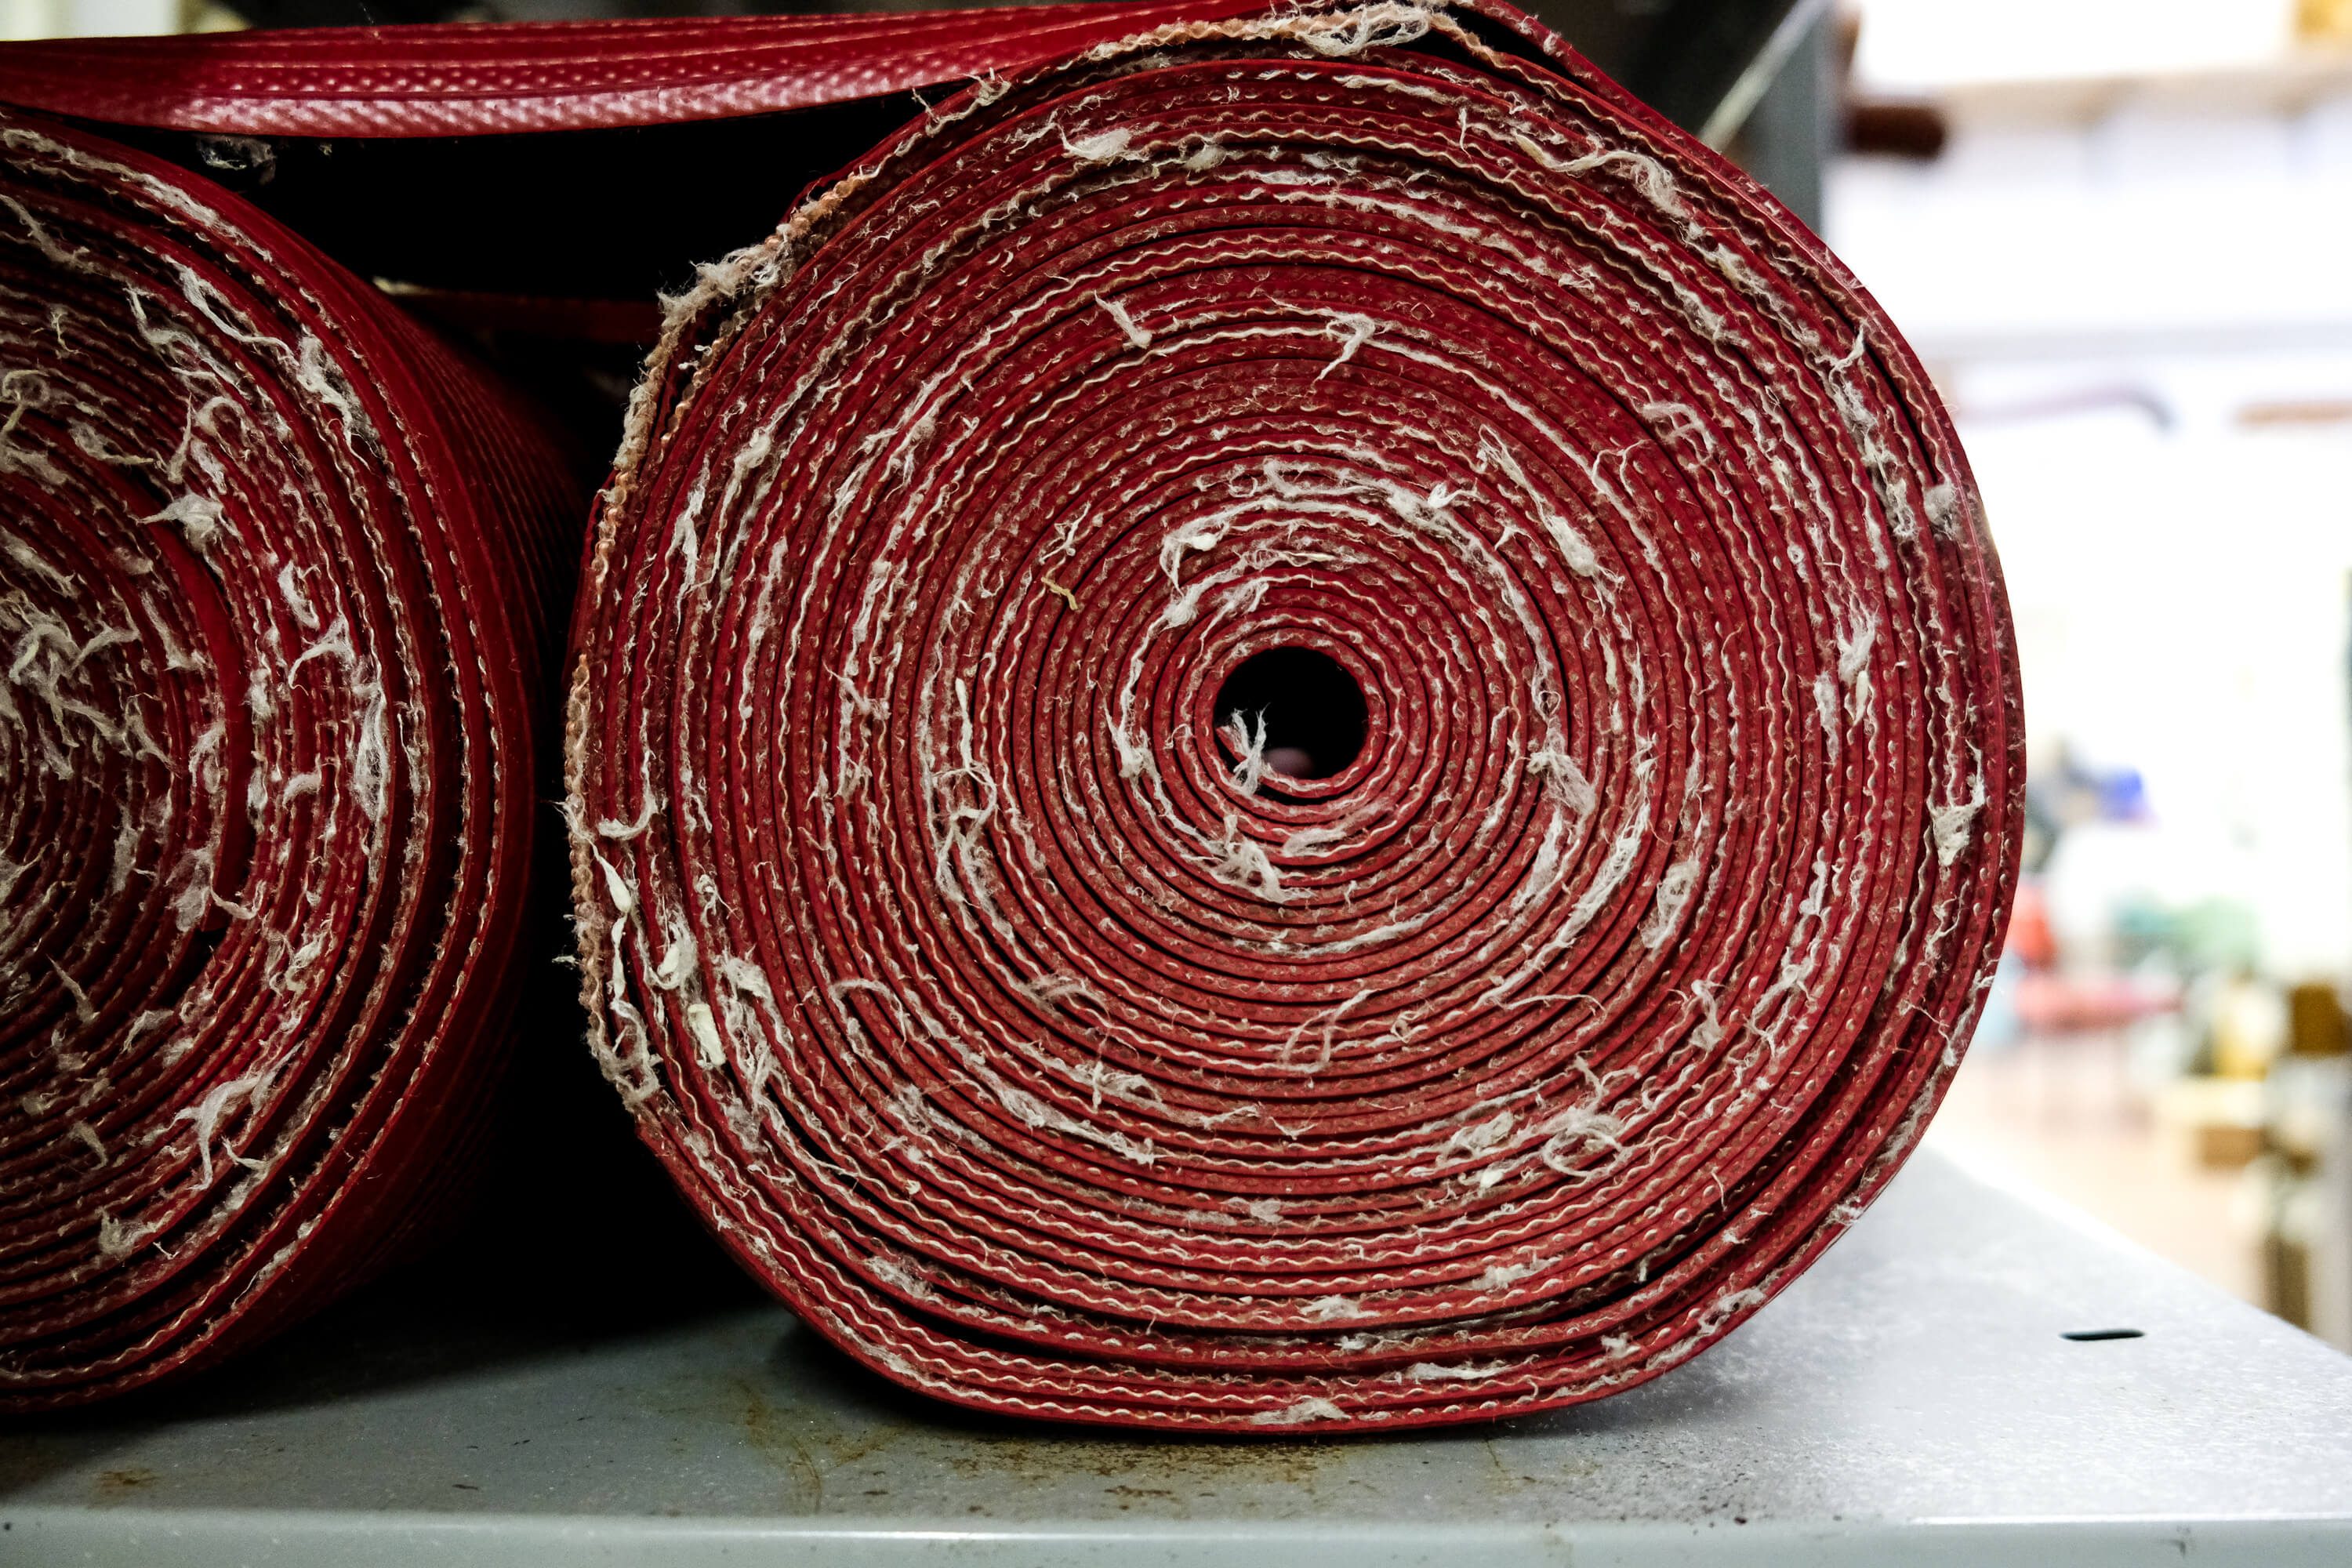 Elvis & Kresse turns fire hose into beautiful products.